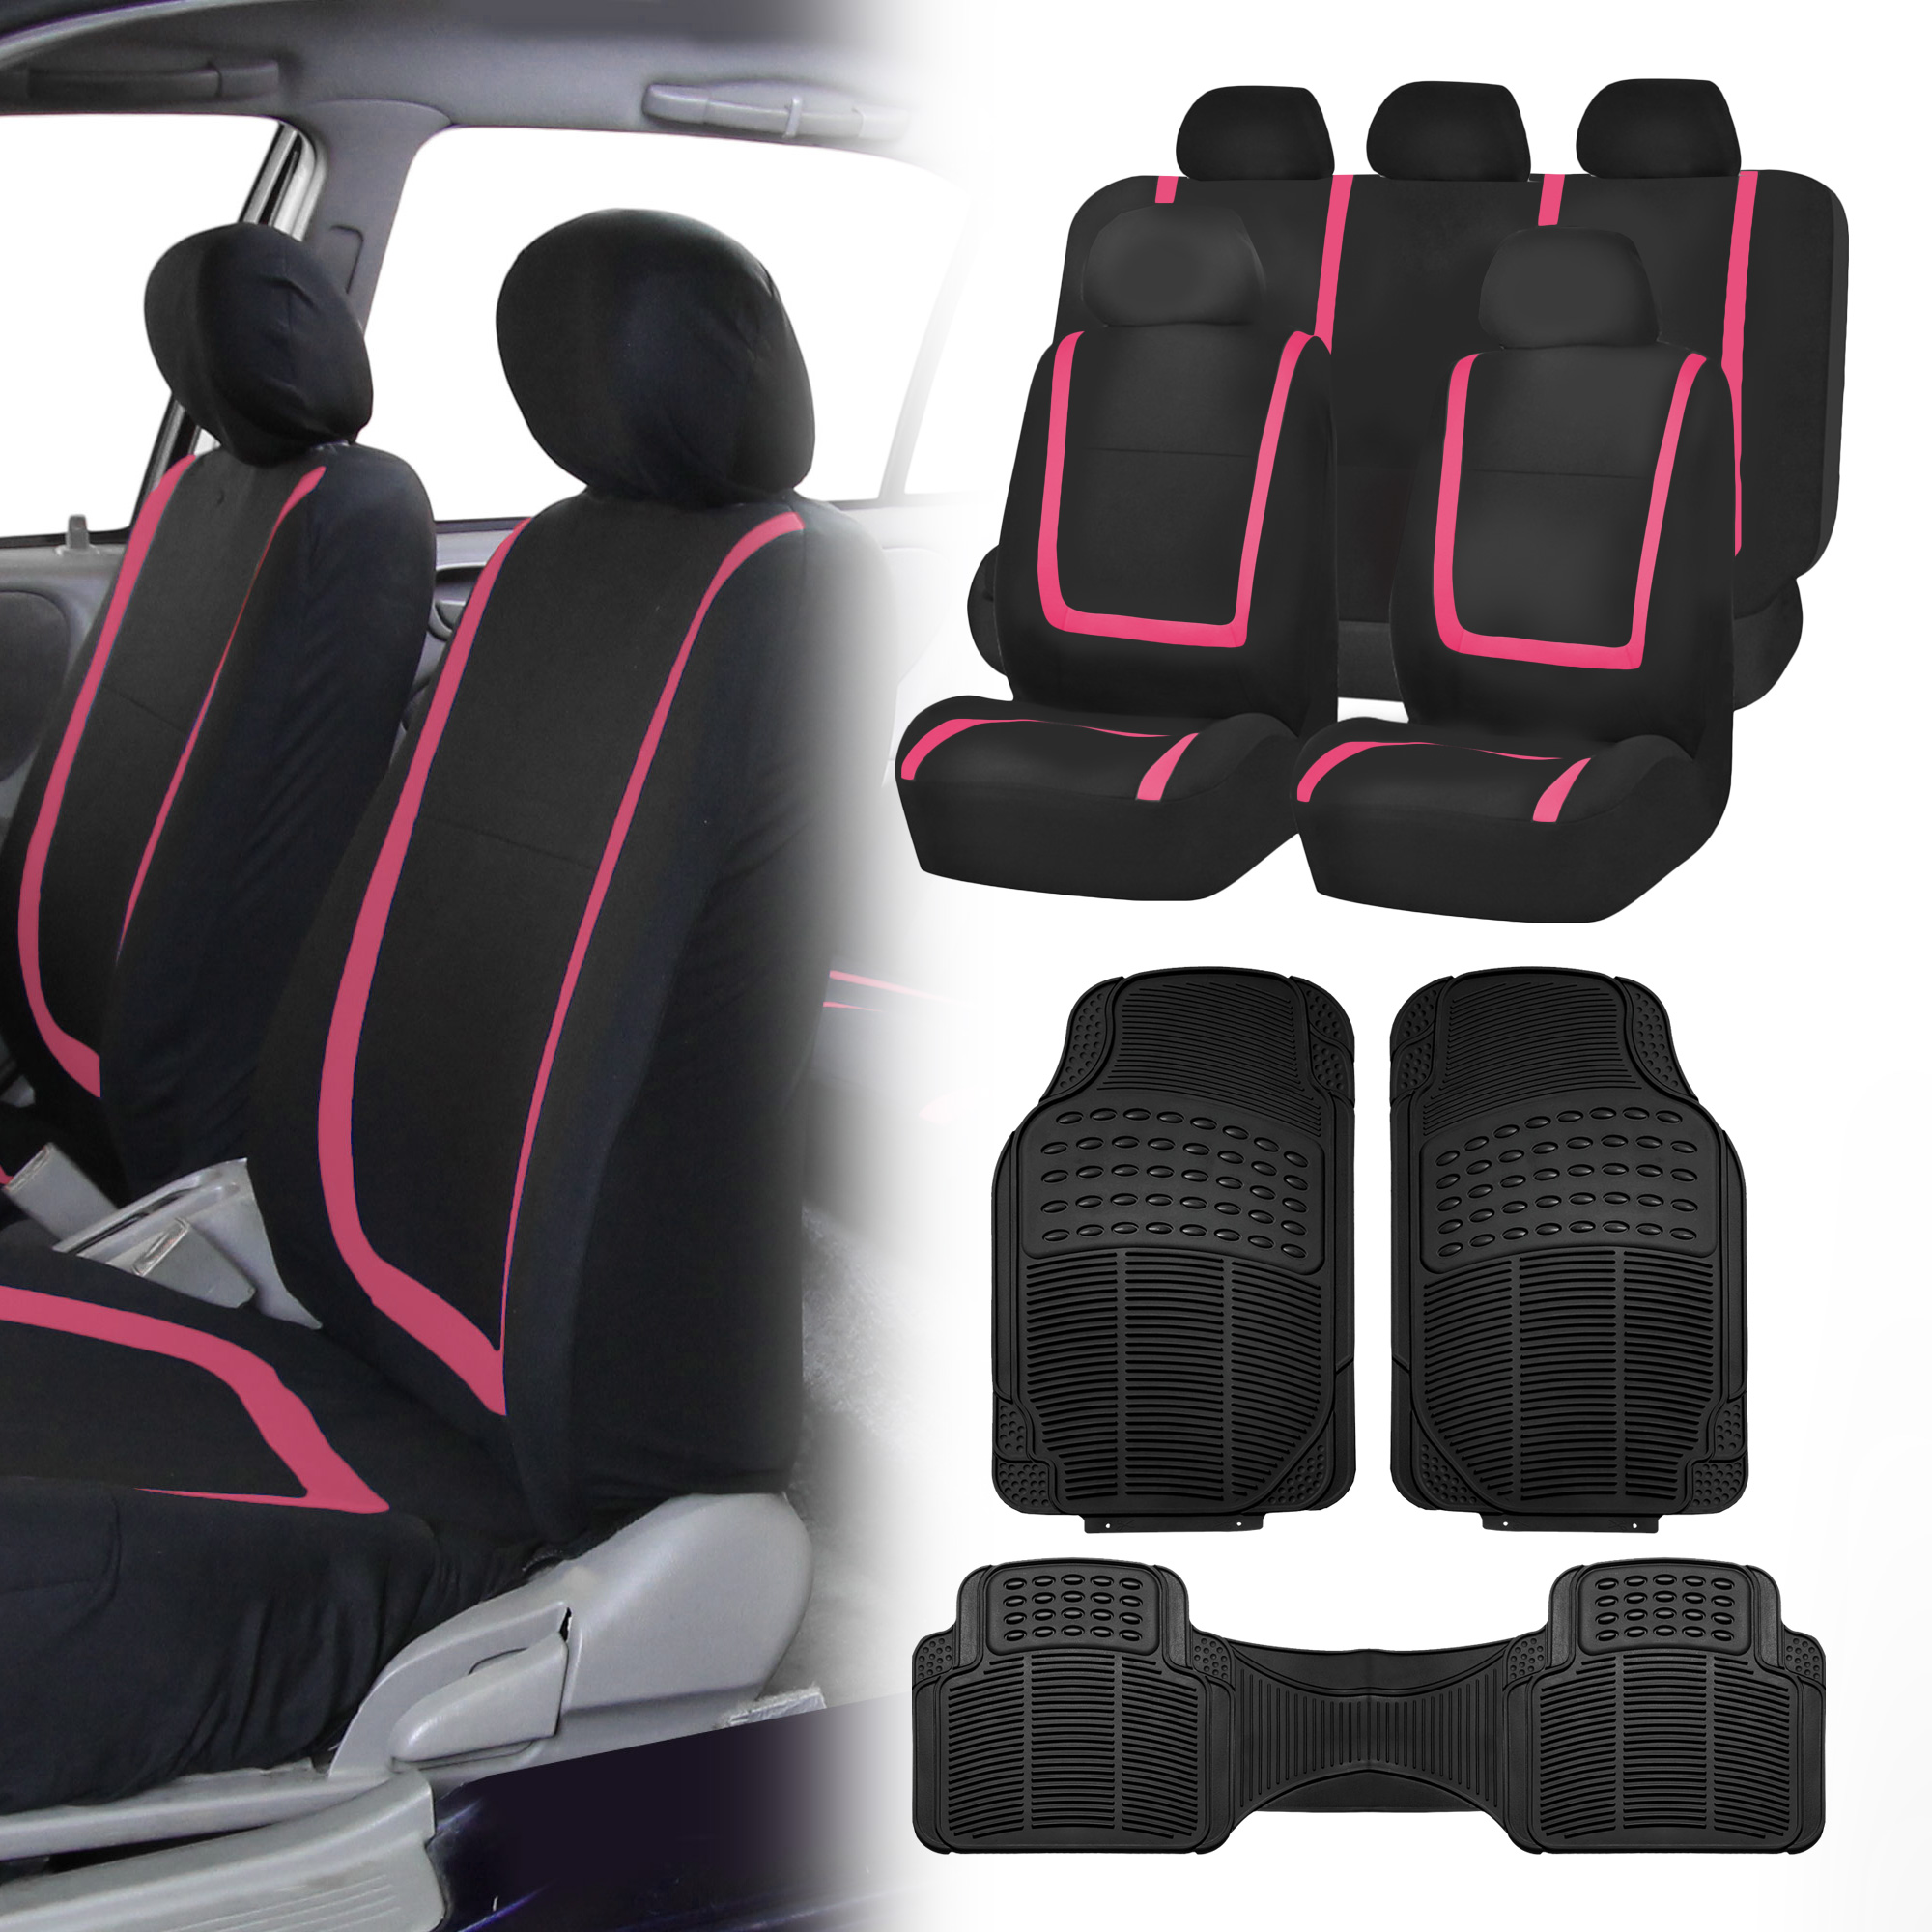 black pink car seat covers with black rubber floor mats for auto car suv ebay. Black Bedroom Furniture Sets. Home Design Ideas